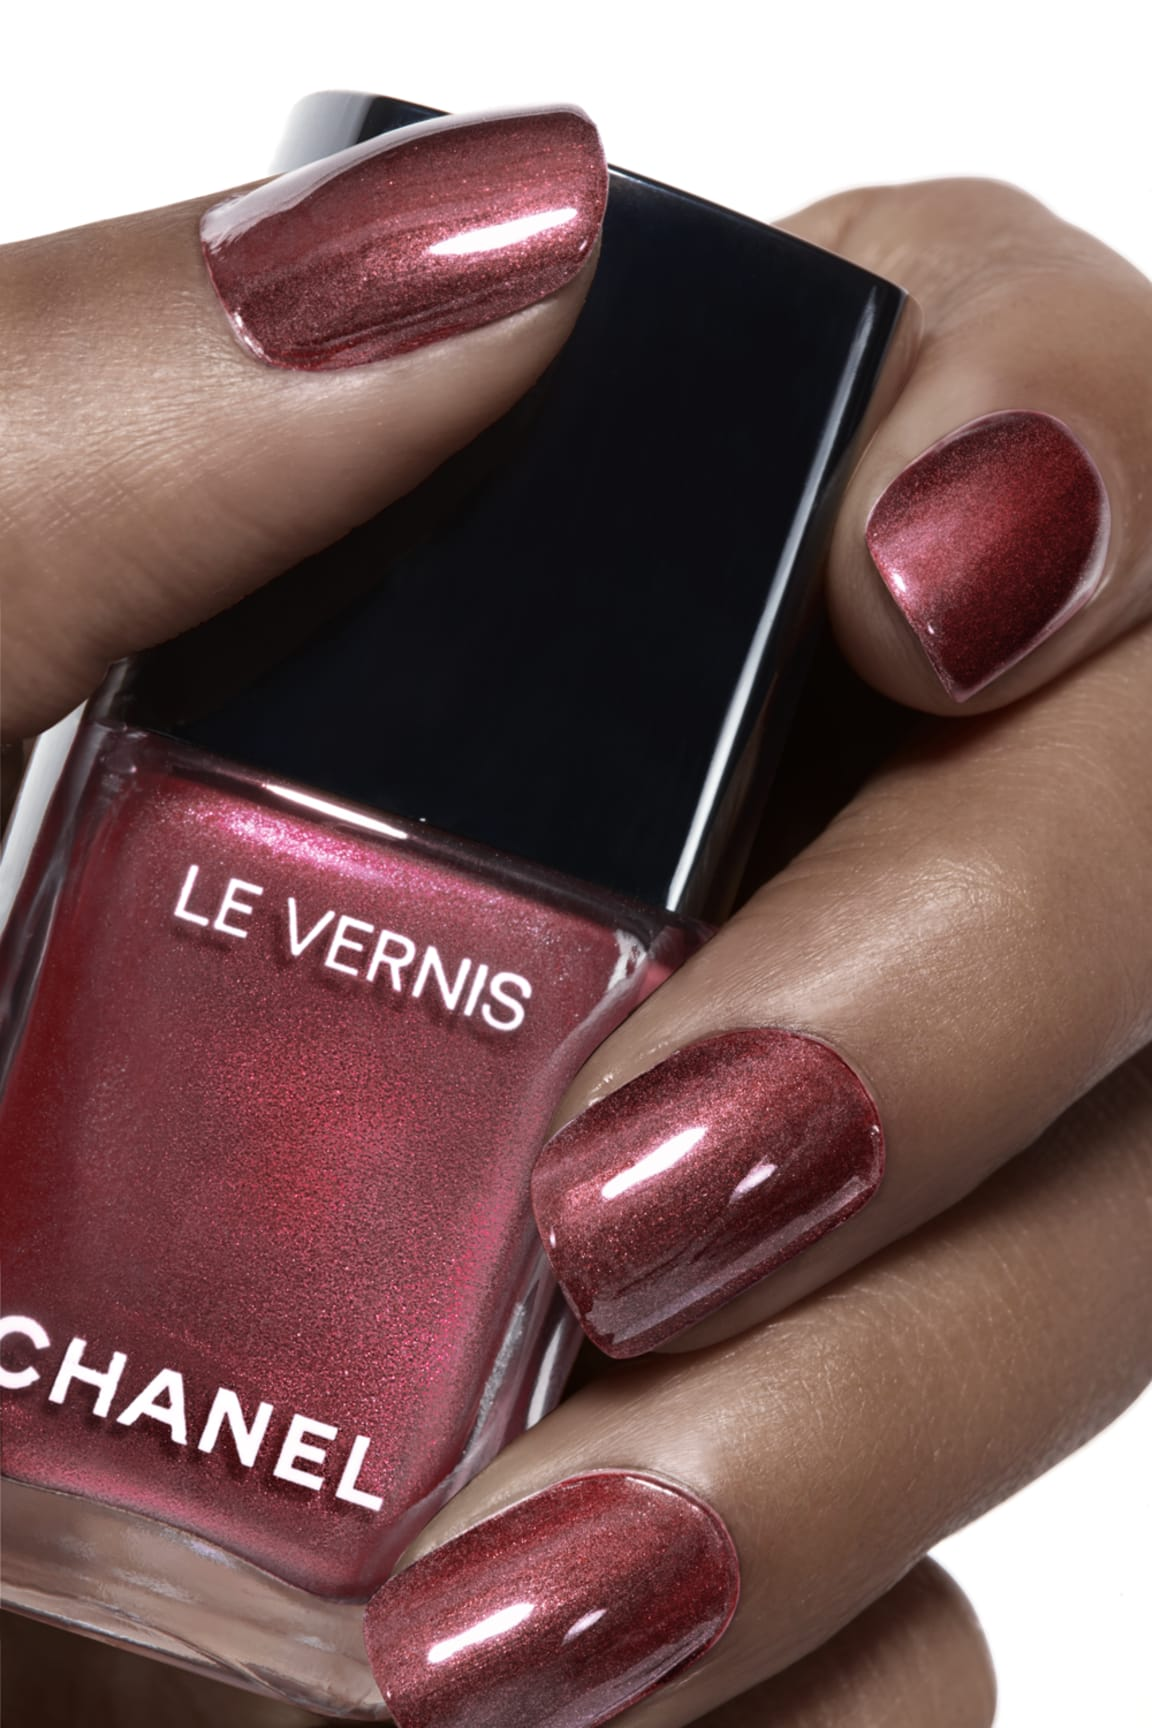 Application makeup visual 1 - LE VERNIS 891 - PERLE BURGUNDY